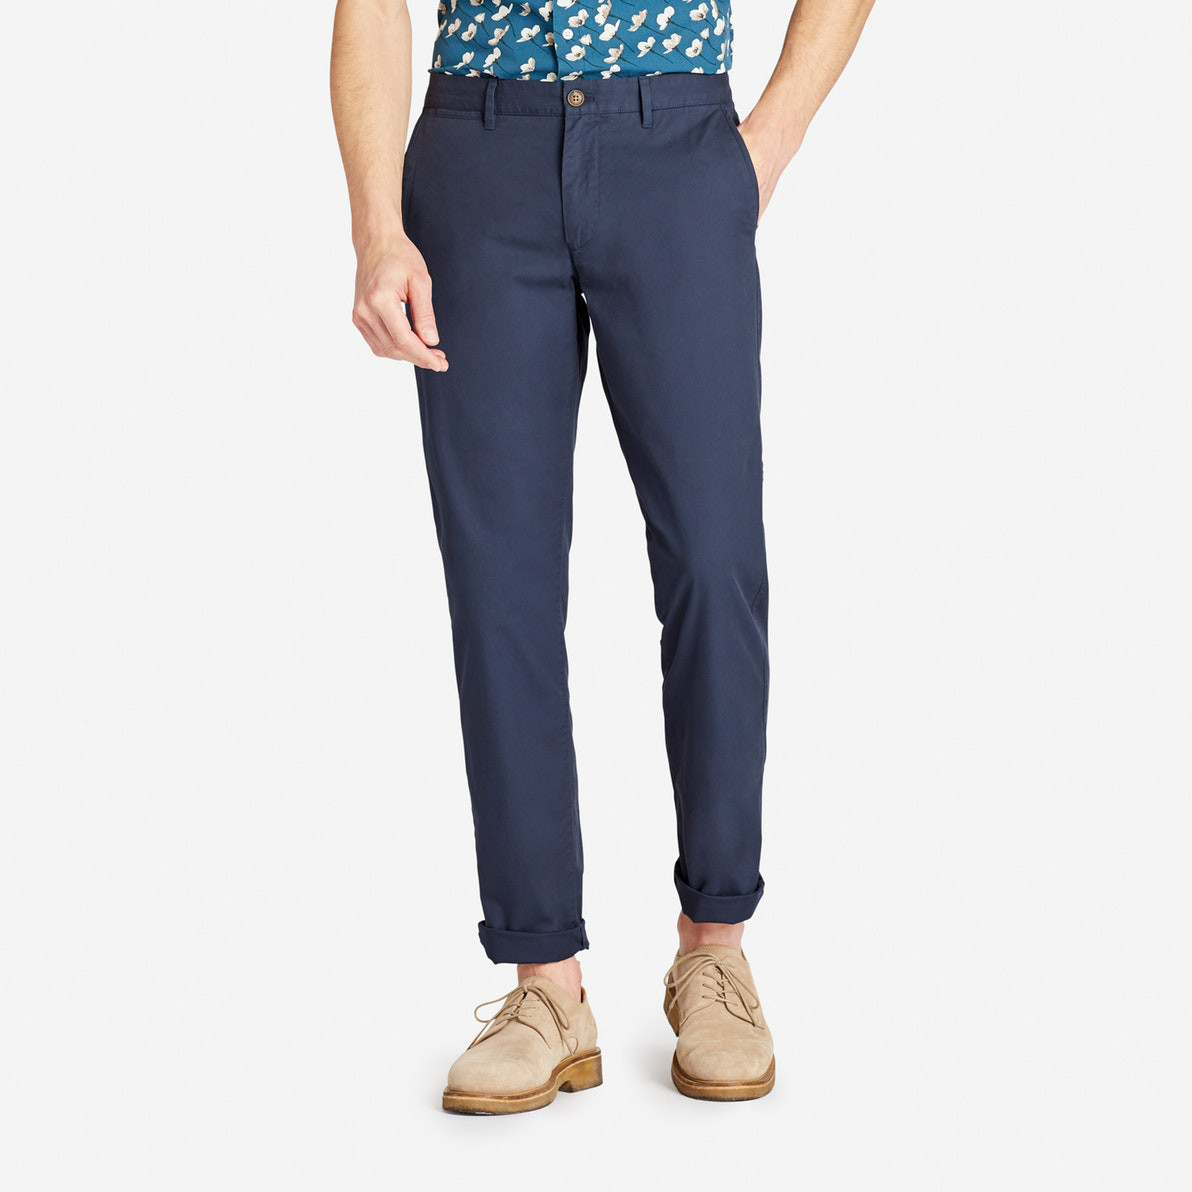 Bonobos Chinos Men's Winter Fashion